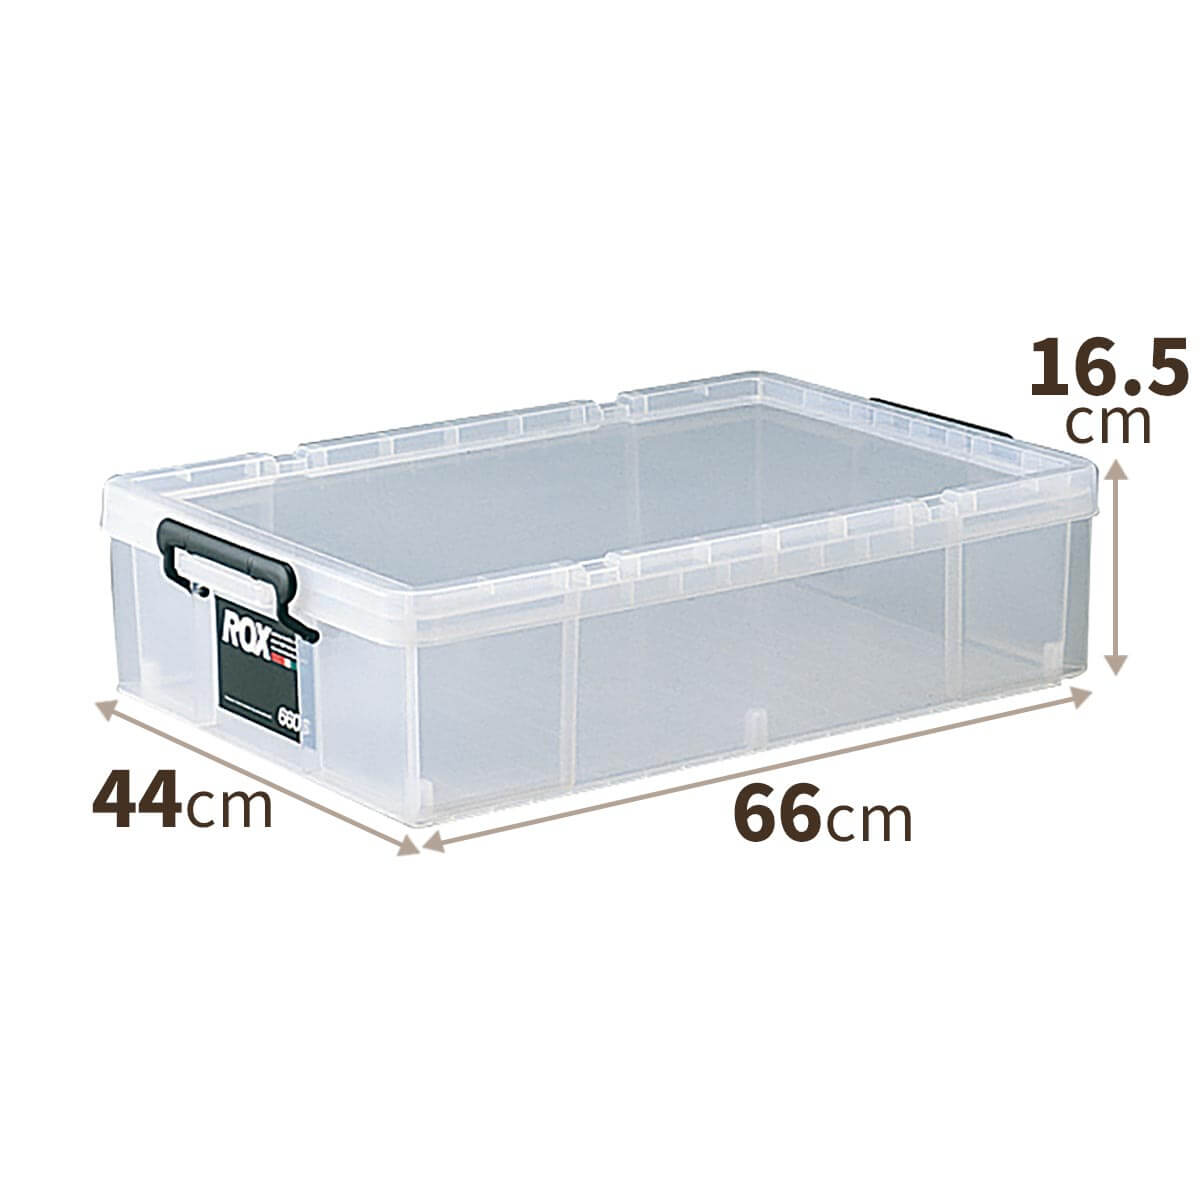 Fine Steed With The Locks 660s Clear Clothes Case Plastic Fashion Storage Case Closet Storing Closet Storage Case Closet Storing Storing Box Cover